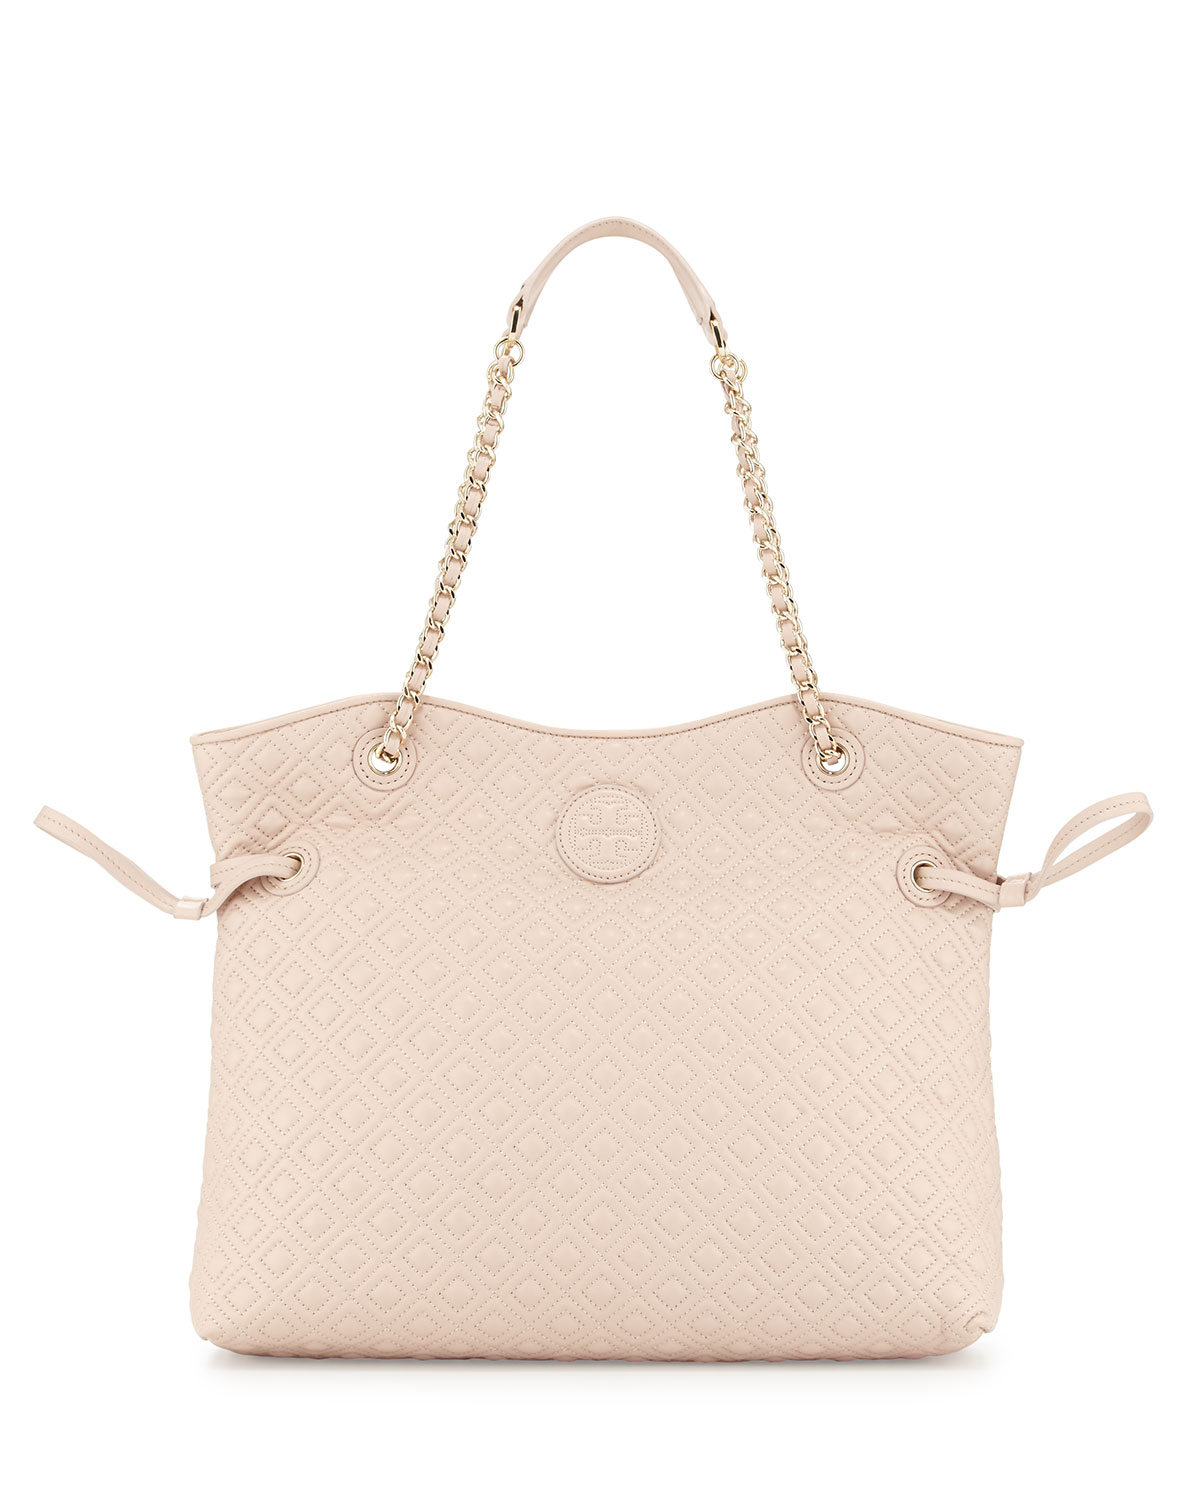 tory burch sandals clearance Tory Burch Accessories Jewelry, Tory Burch Swarovski Imitation Pearl Stud Earrings Ivory/Shiny Gold Women Accessories Jewelry,tory burch purse crossbody,Shop Best Sellers tory burch purse,Hot Sale Timeless Tory Burch earrings made .